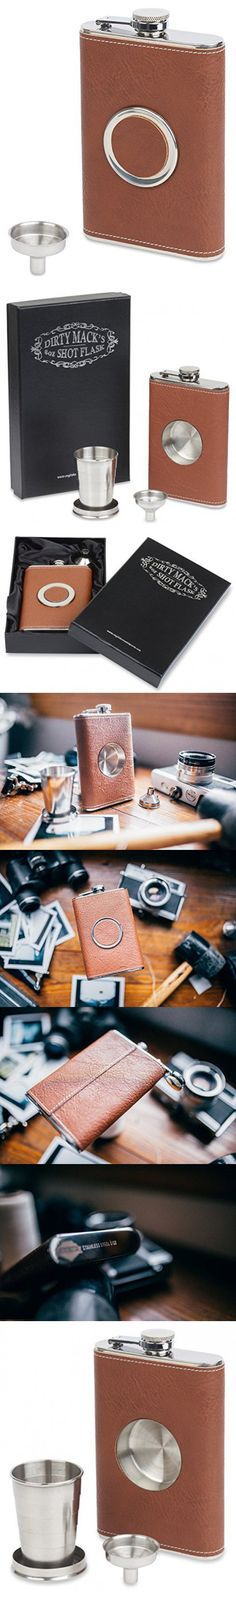 Shot Flask - Dirty Mack's 8oz Brown Leather Stainless Steel 8 Ounce Hip Whiskey Flask Gift Set with Collapsible Retractable Steel Cup and Easy Pour Funnel - Great Wedding or Anniversary Gift